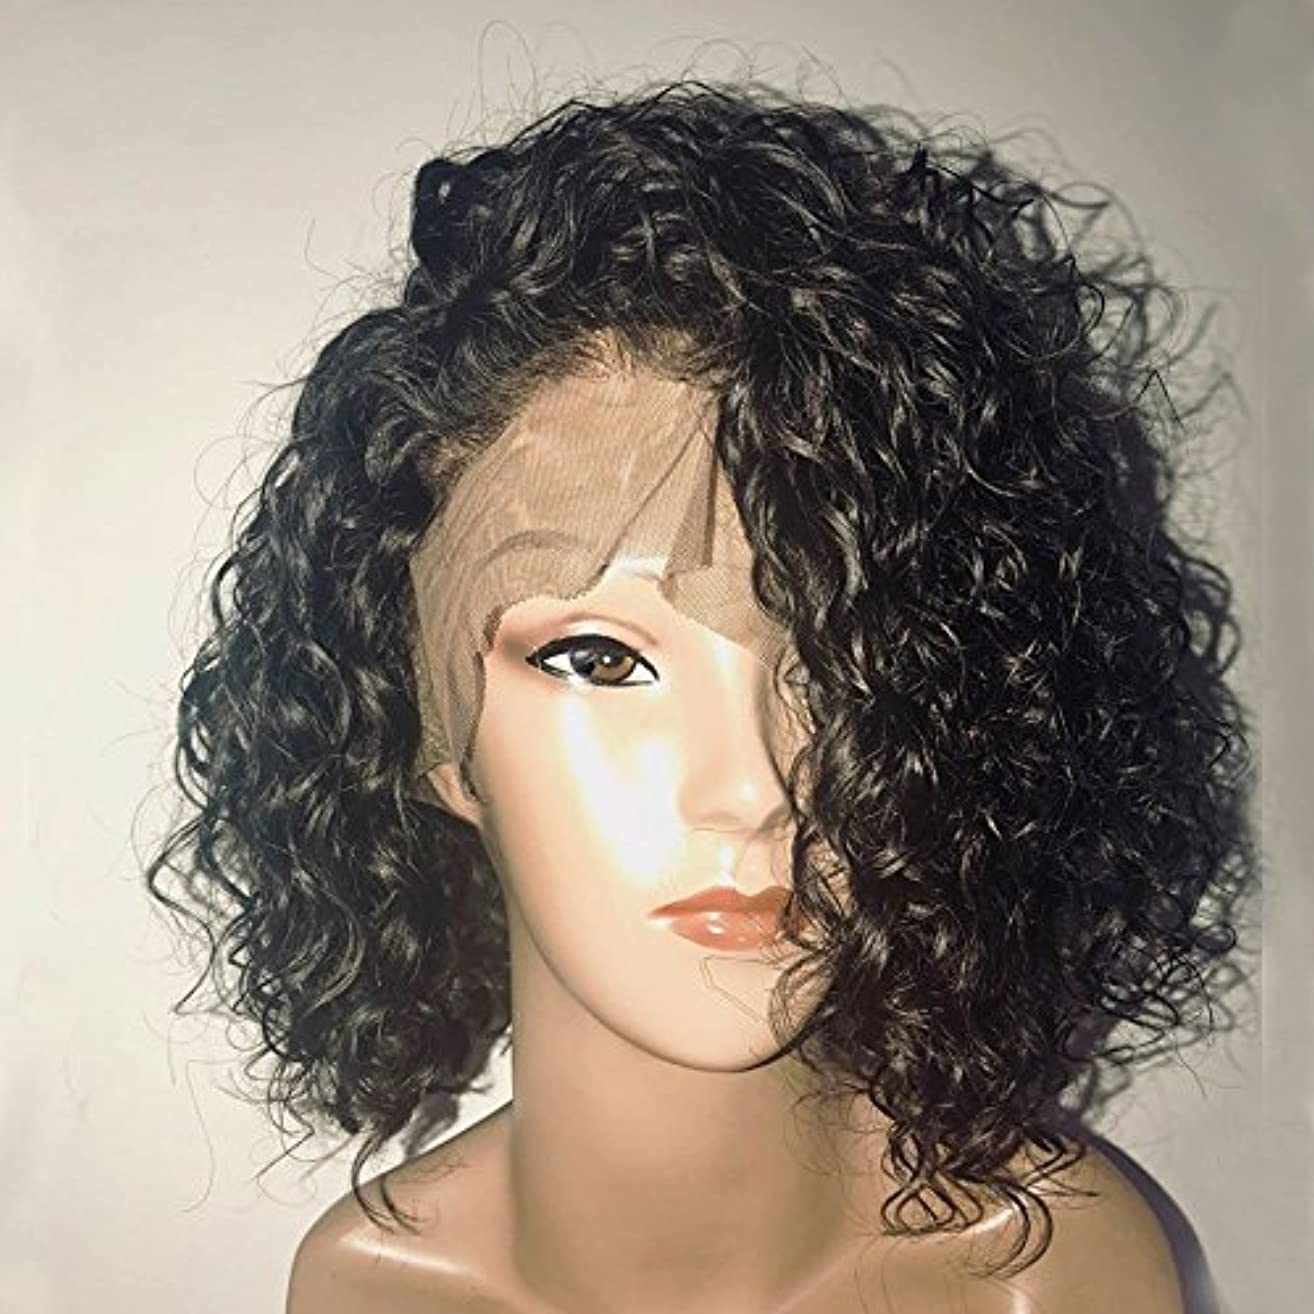 Dorosy Hair 360 Lace Frontal Wigs 150% Denisty Human Hair Wigs for Black Women Curly Brazilian Virgin Hair Pre Plucked Lace Wigs with Baby Hair (12 inch with 150% density)